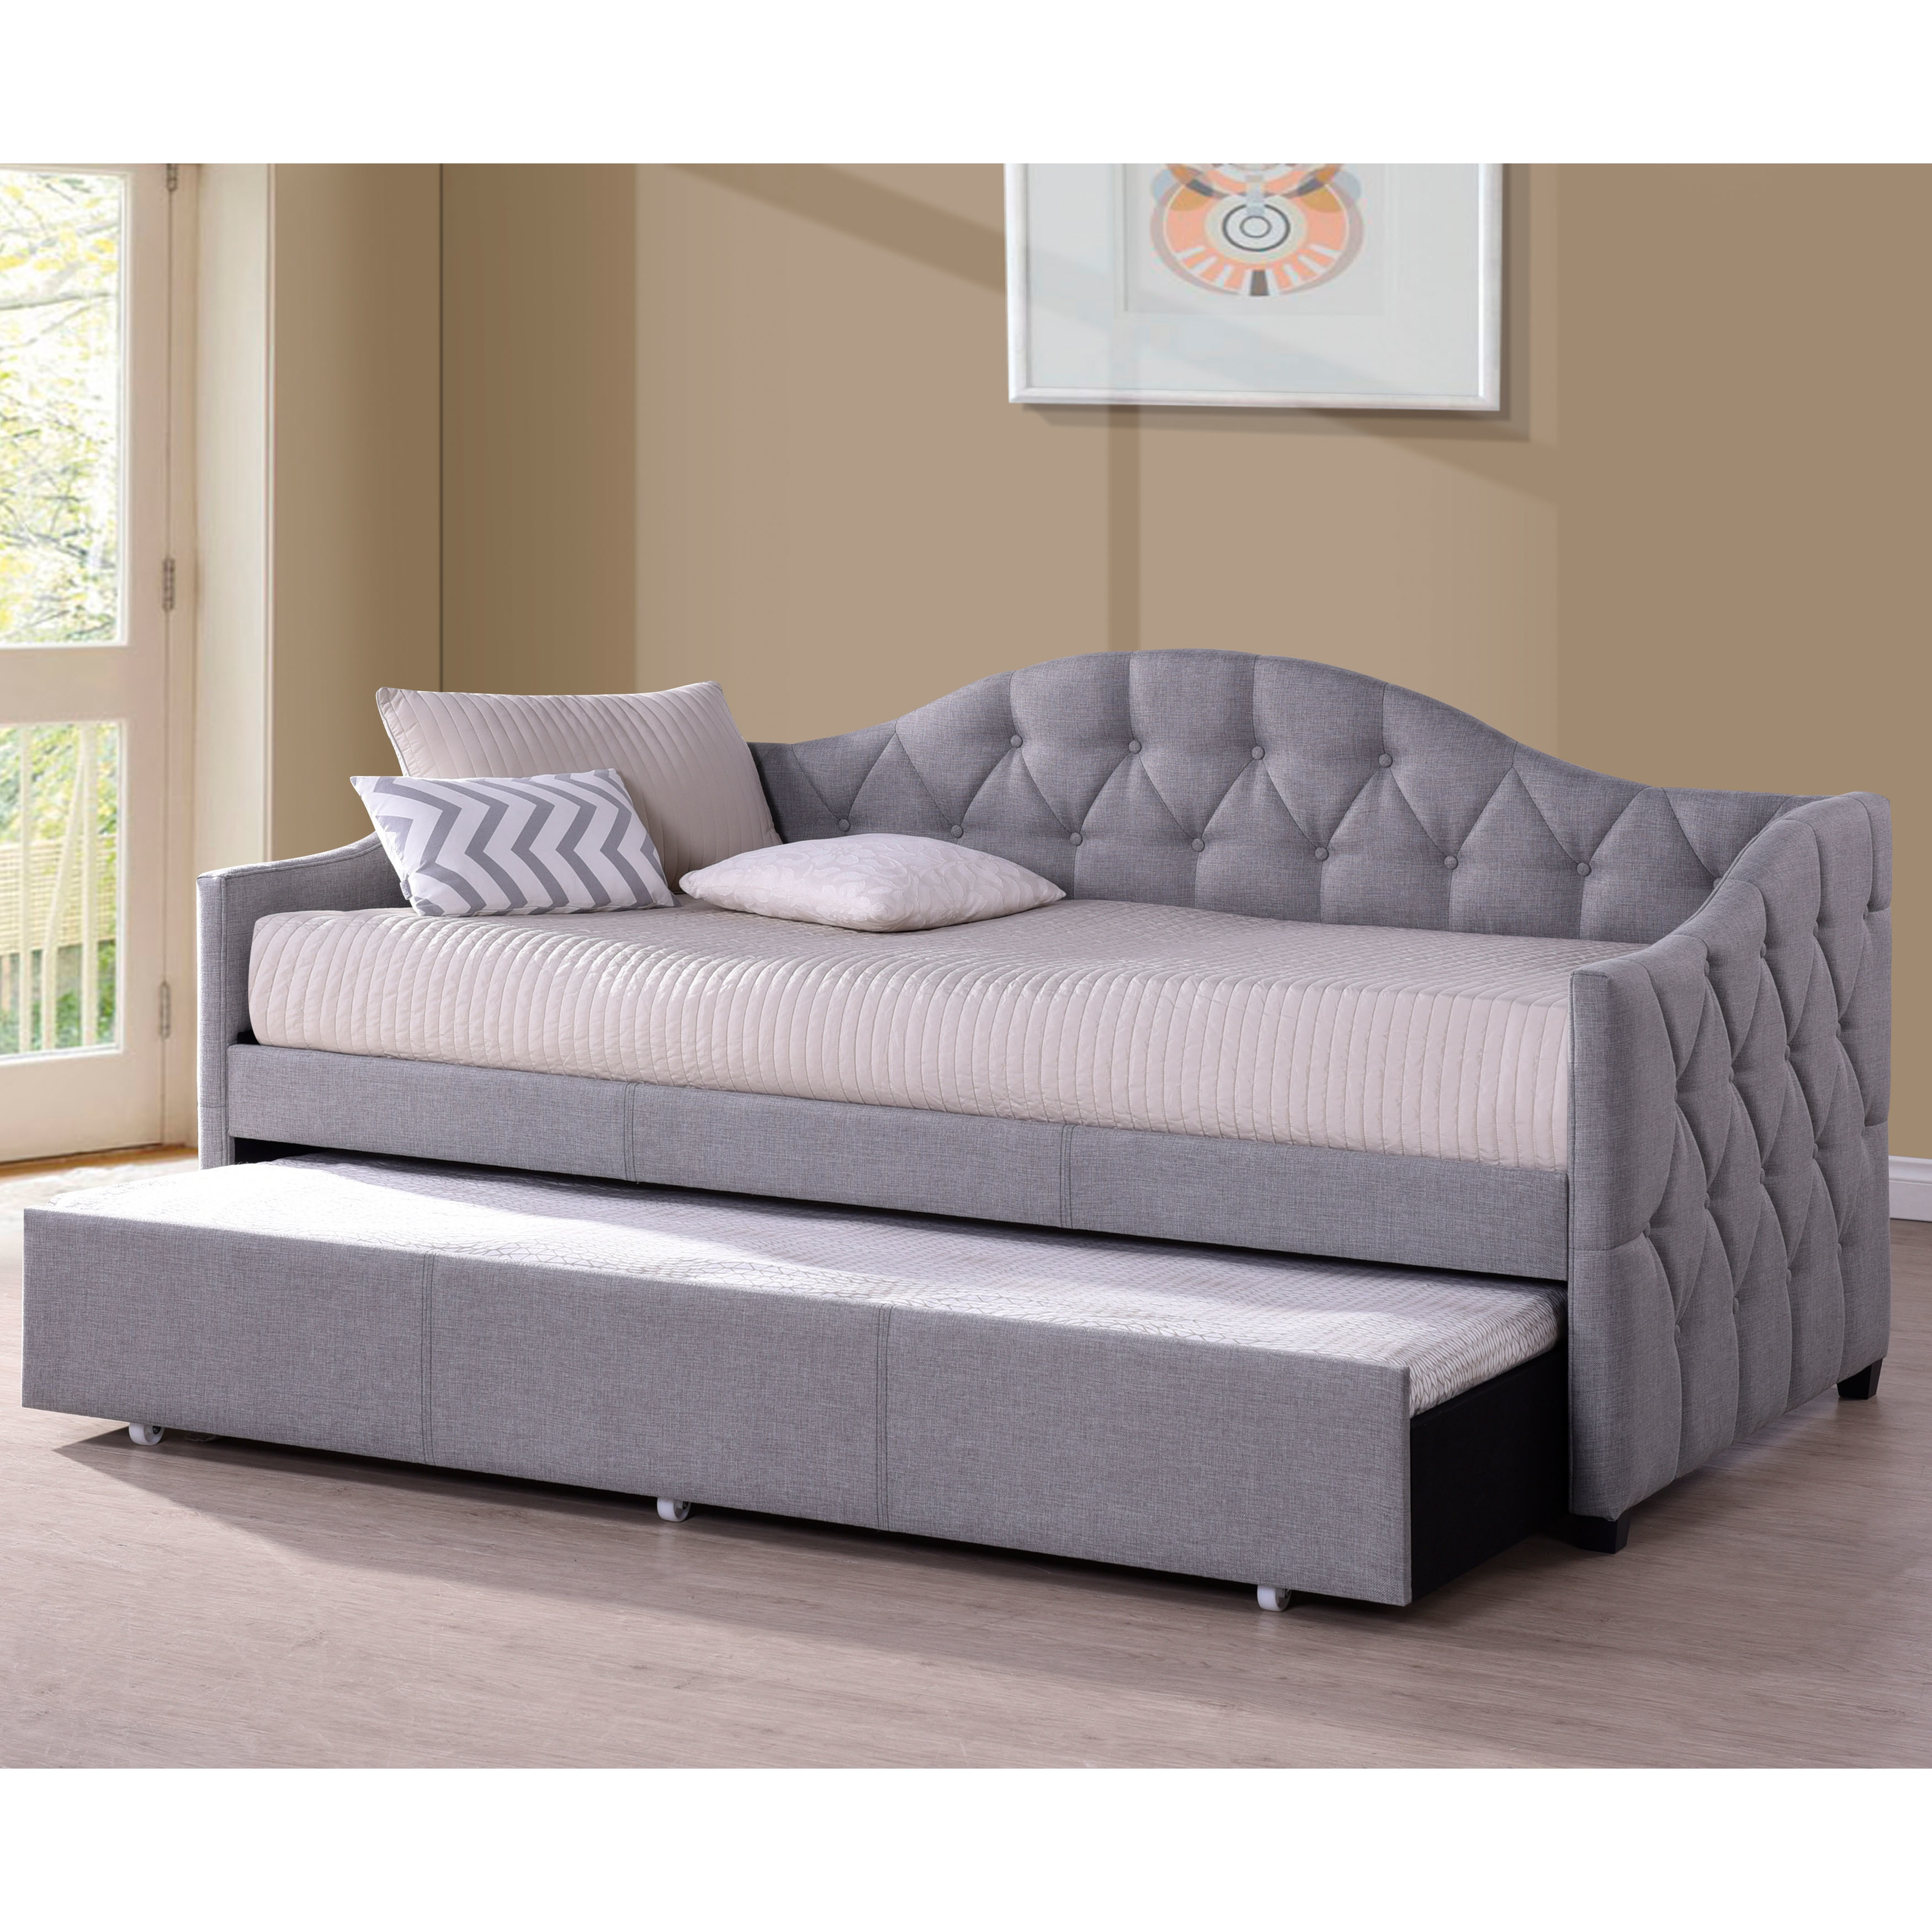 Shop Copper Grove Black Hills Grey Fabric Tufted Daybed With